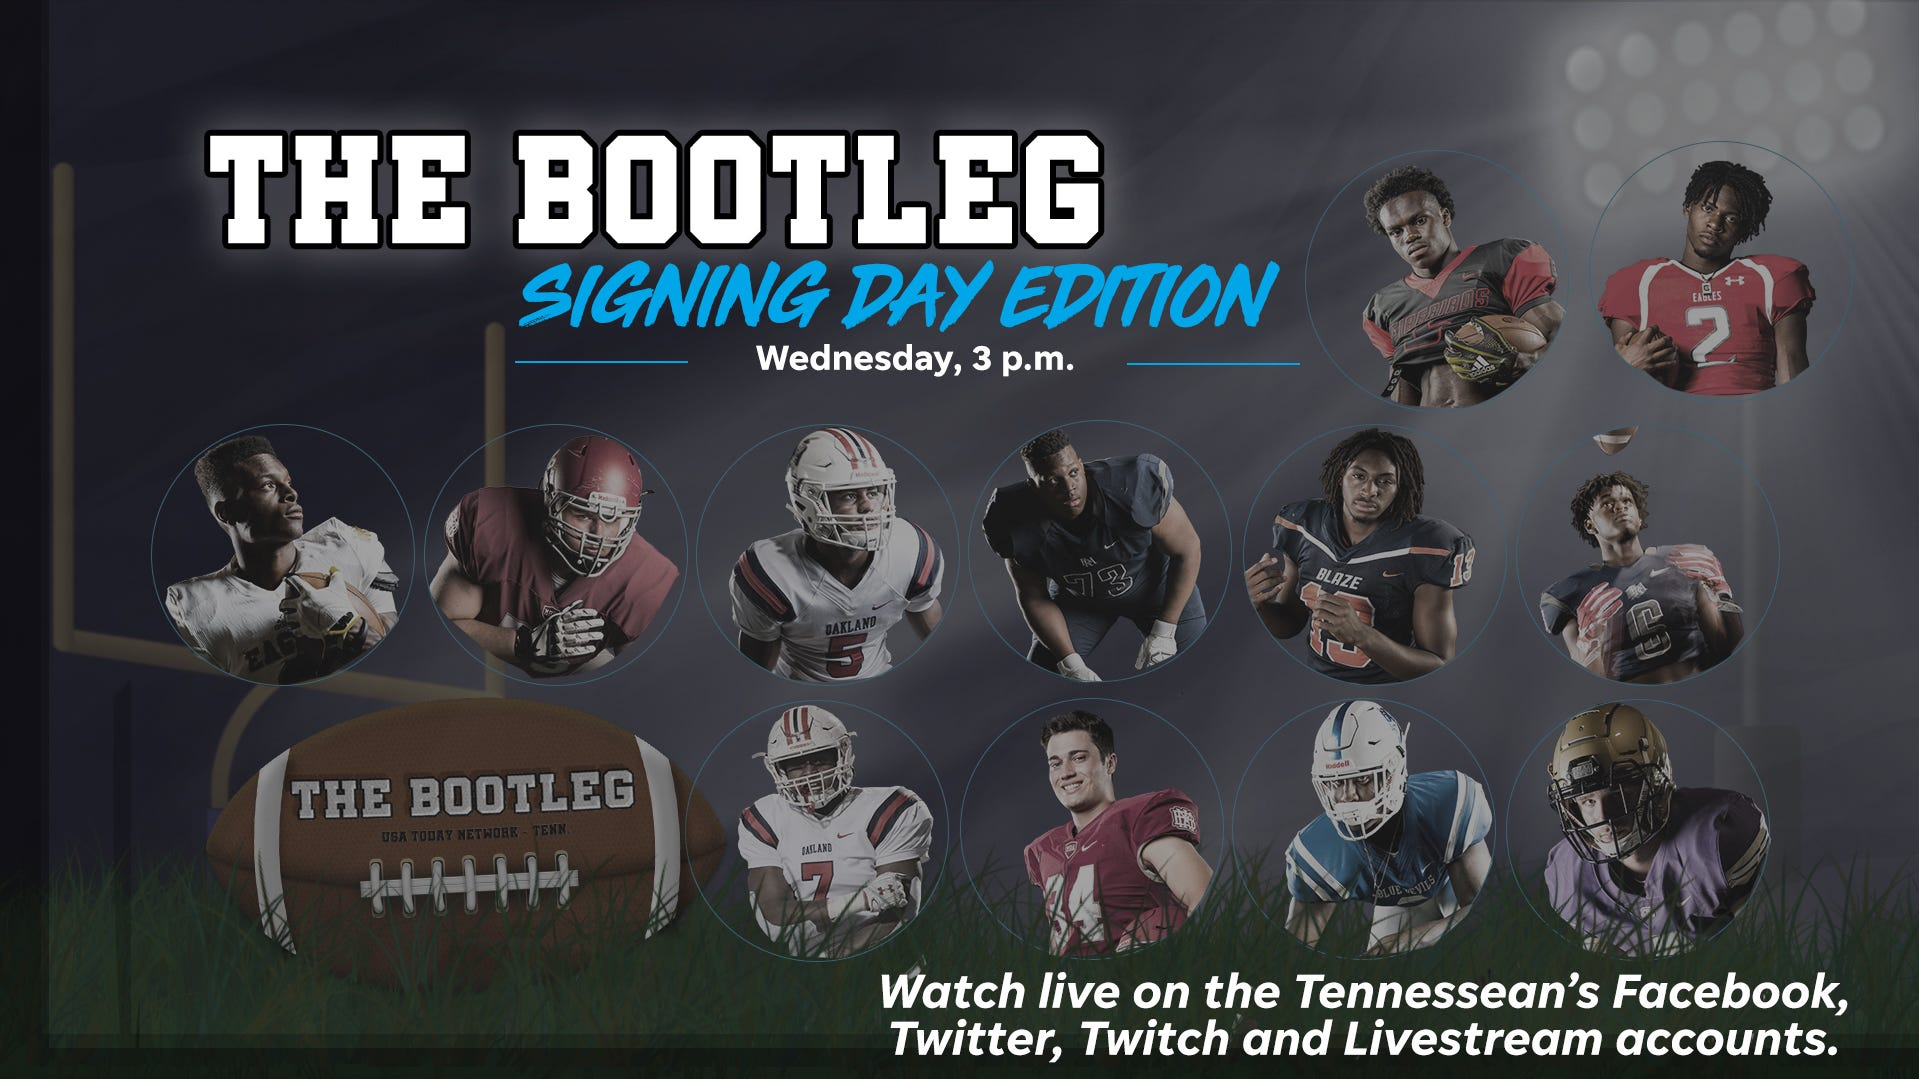 The Bootleg: Signing Day Edition